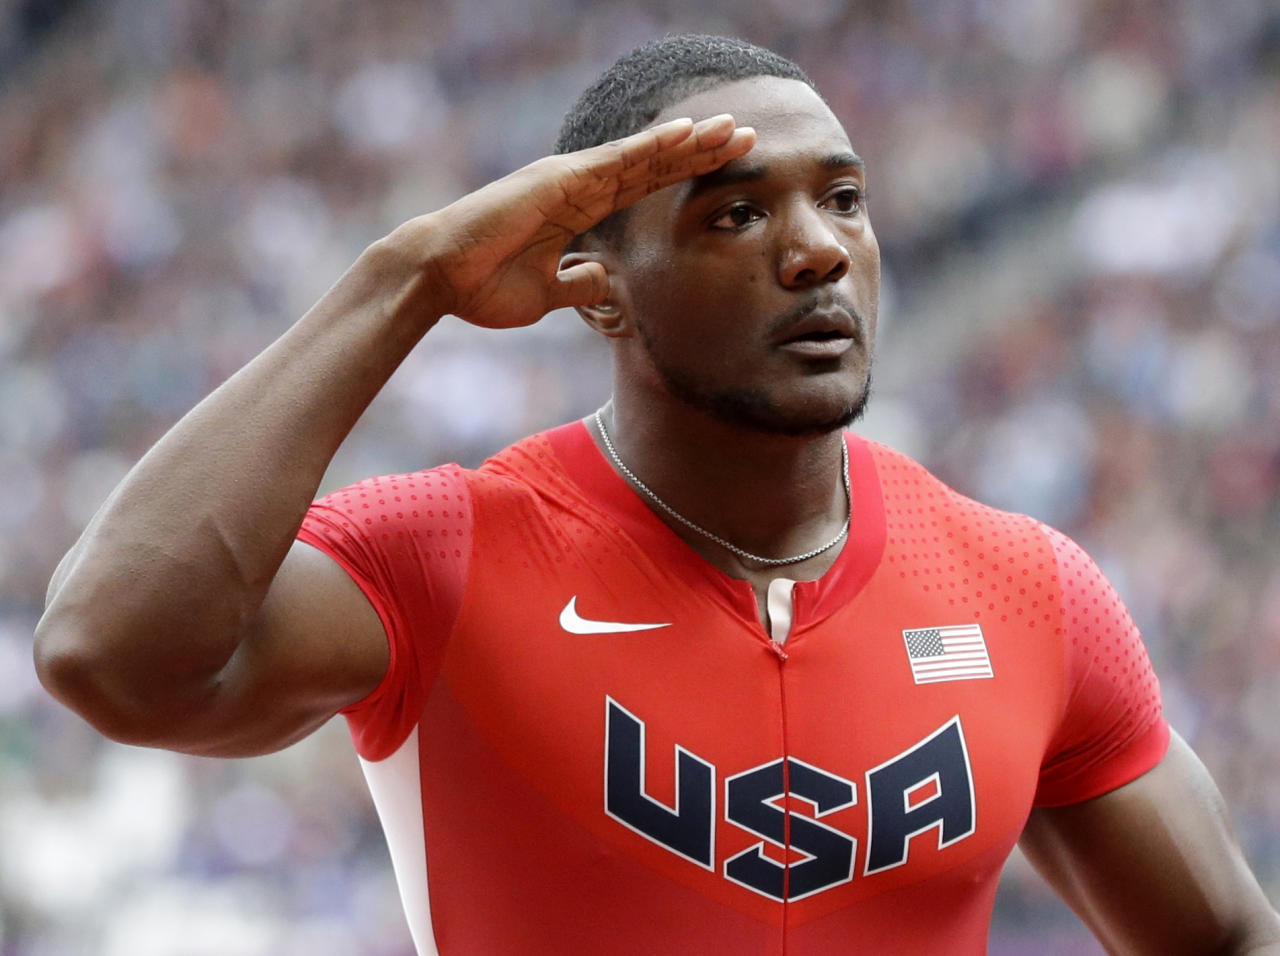 United States' Justin Gatlin reacts after his heat in the men's 100-meters during the athletics in the Olympic Stadium at the 2012 Summer Olympics, London, Saturday, Aug. 4, 2012. (AP Photo/Lee Jin-man)